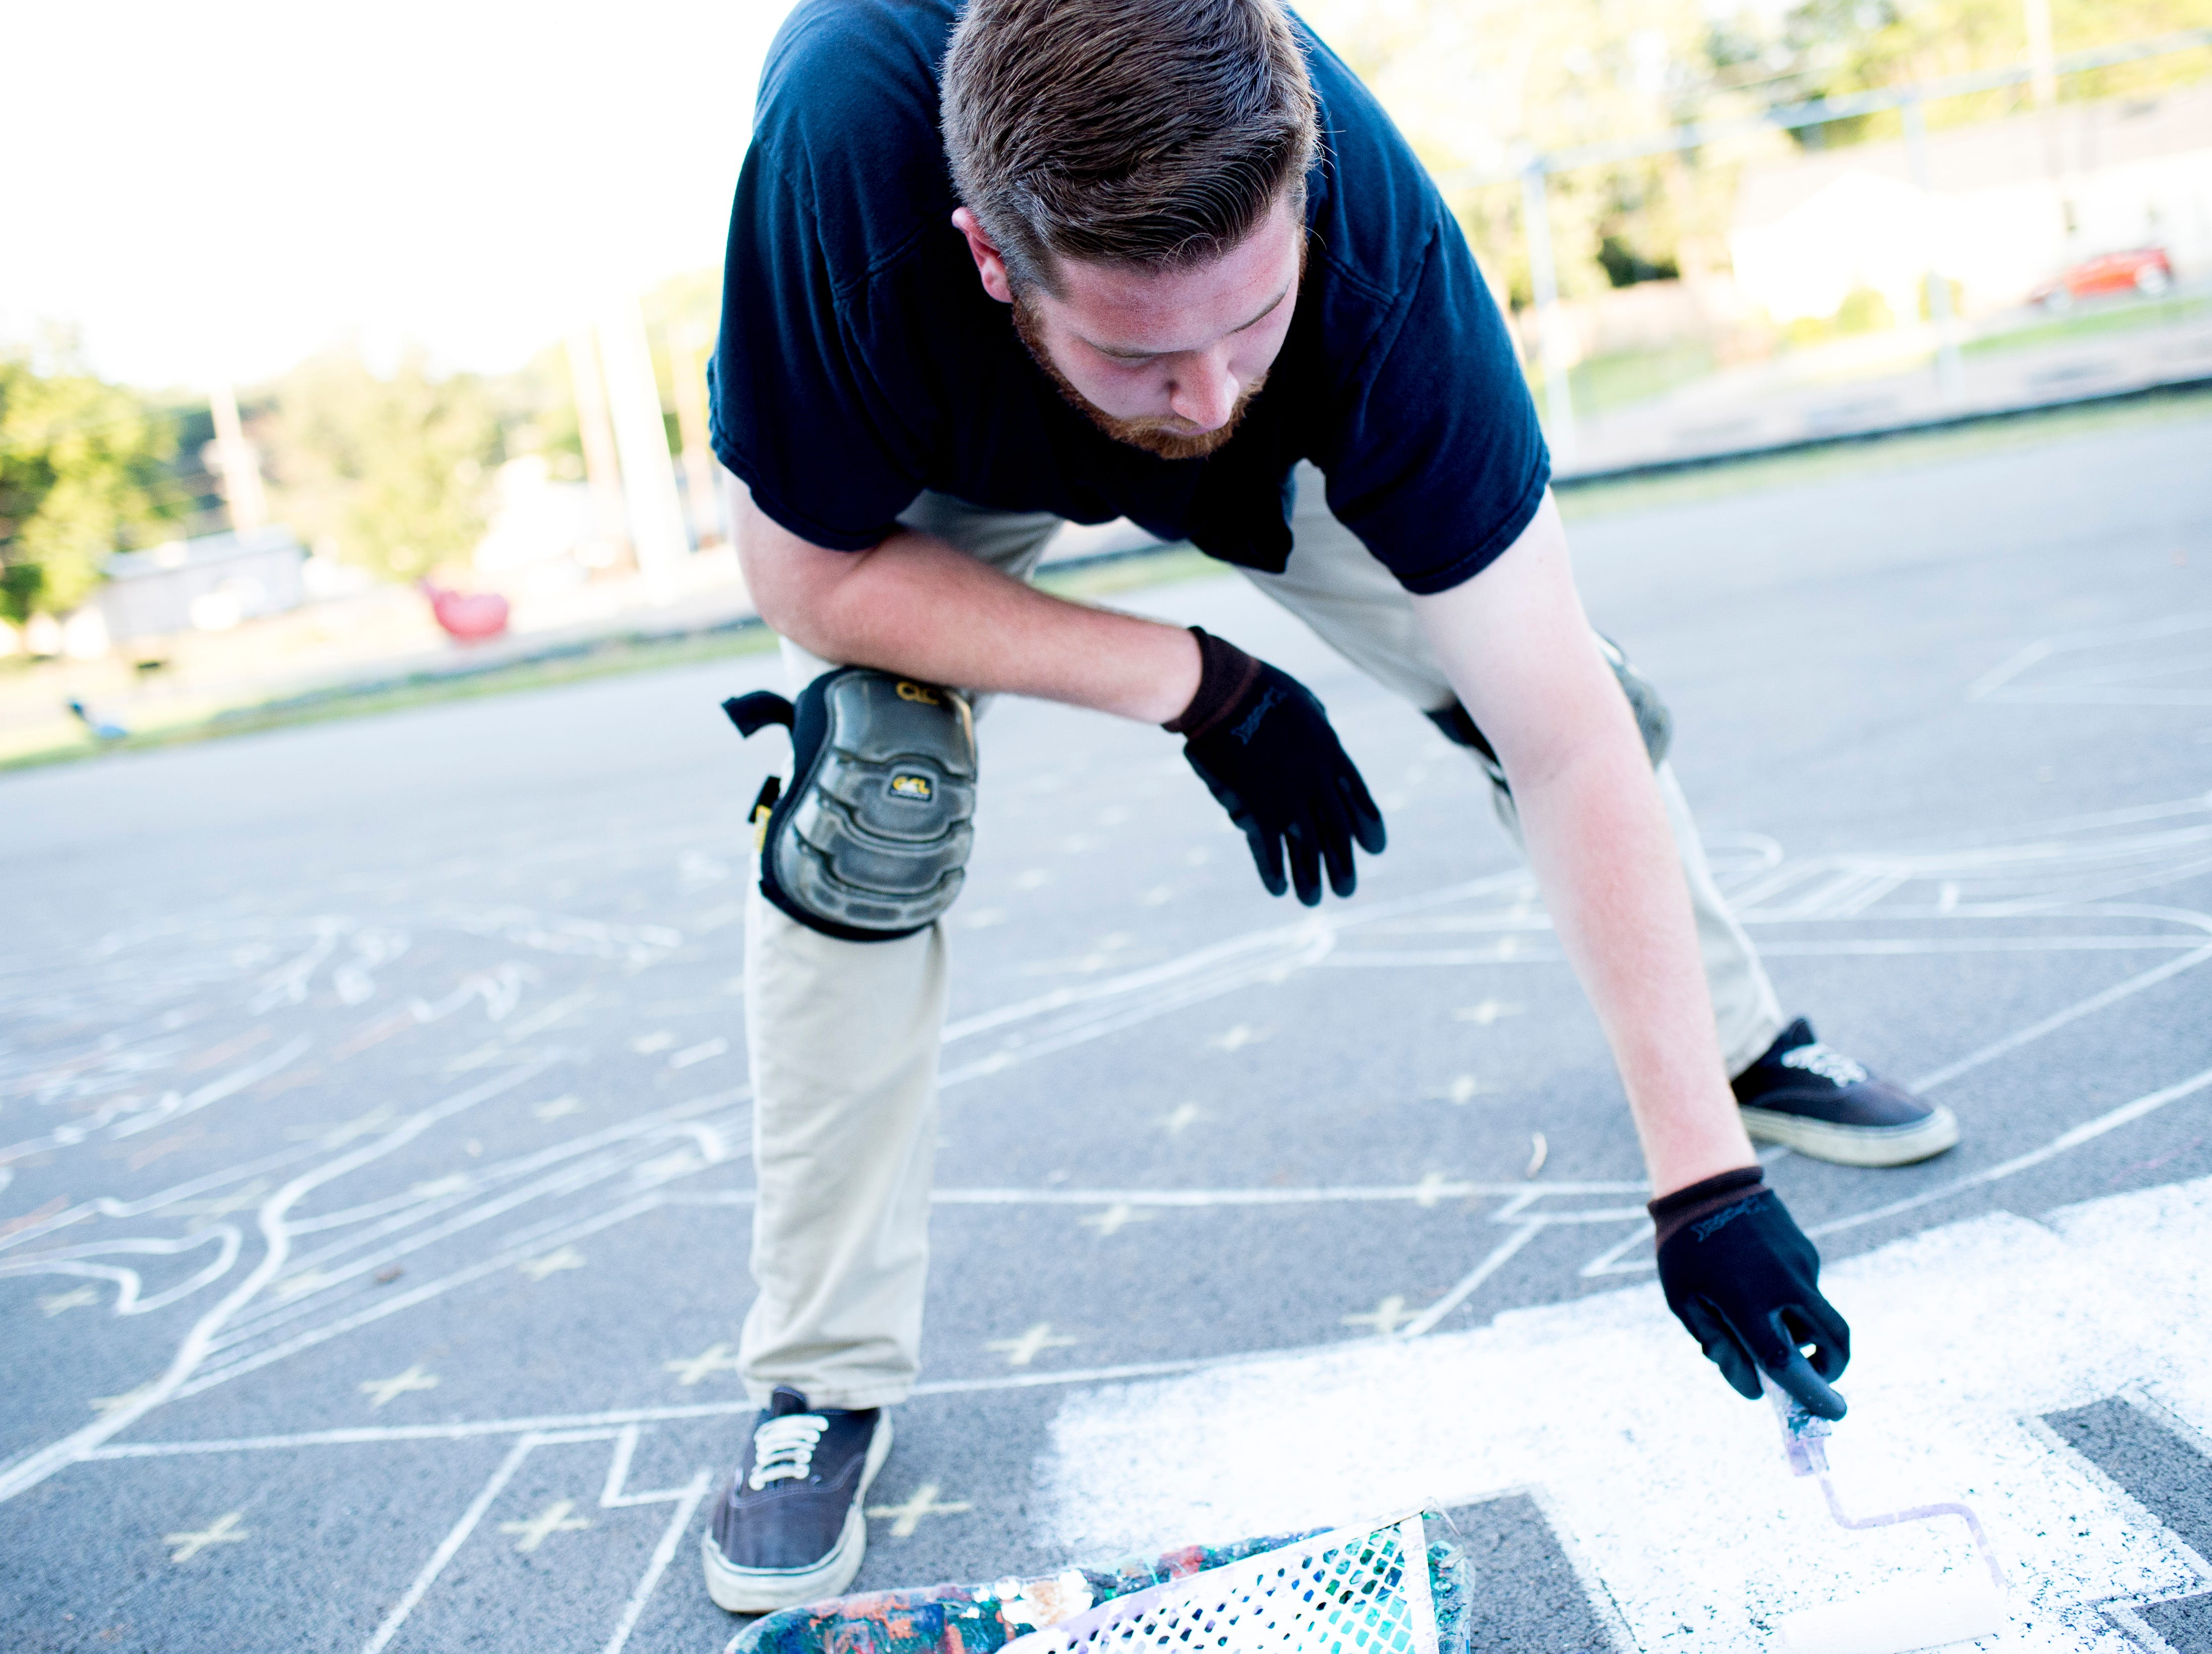 News Sentinel reporter Ryan Wilusz helps paint the outdoor basketball court at Pond Gap Elementary School with local muralist Curtis Glover in Knoxville, Tennessee on Thursday, October 4, 2018. Glover is quickly becoming known in the Knoxville area for his incredibly detailed murals.